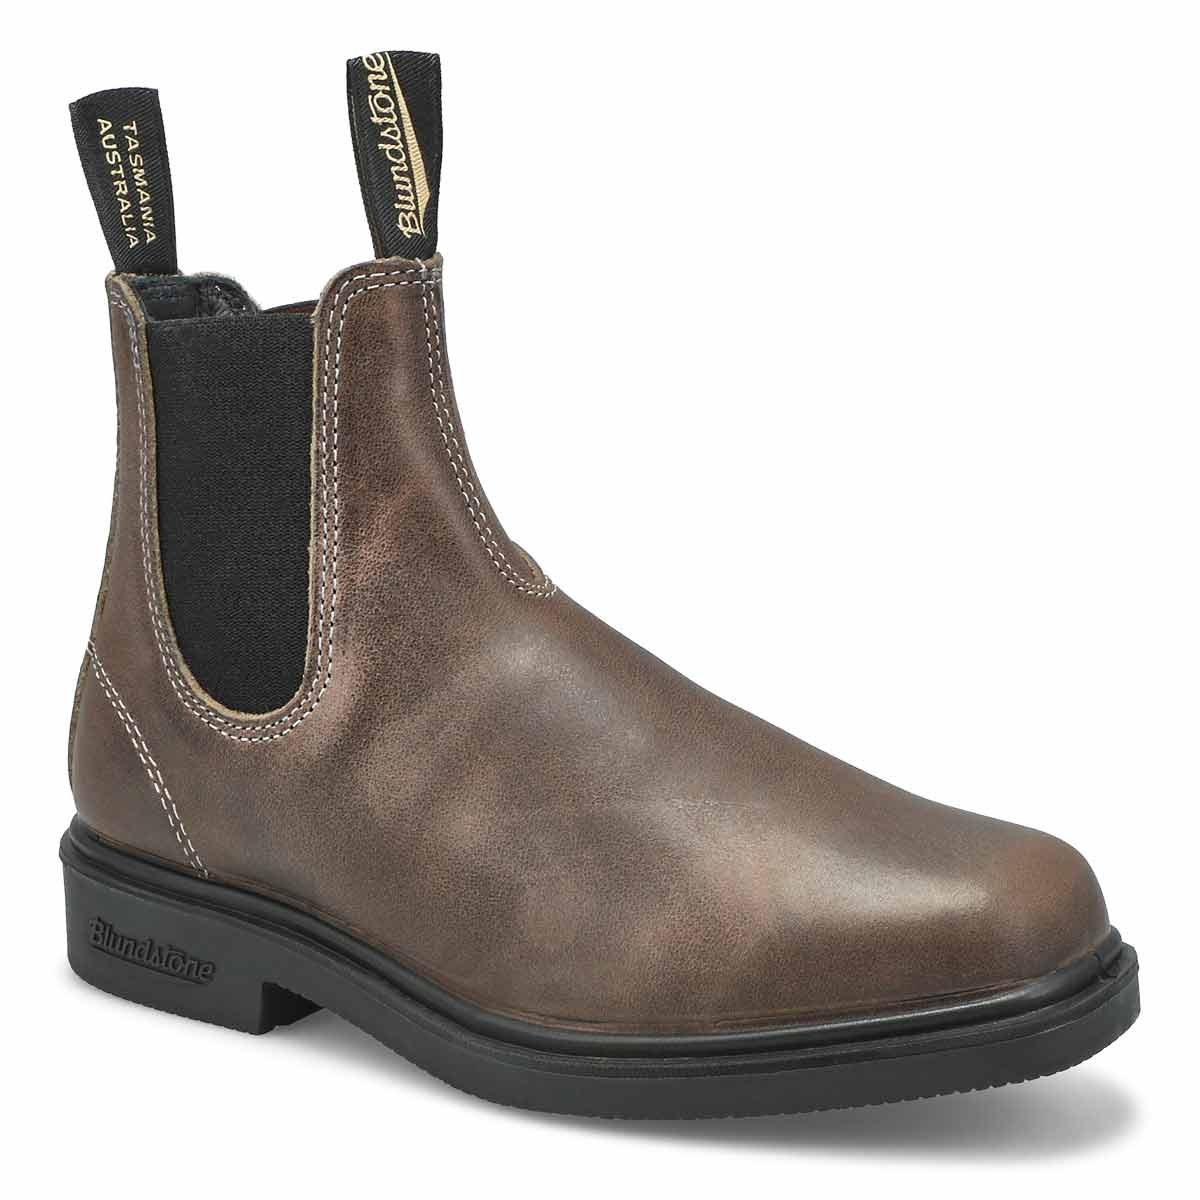 Unisex CHISEL TOE grey twin gore boots